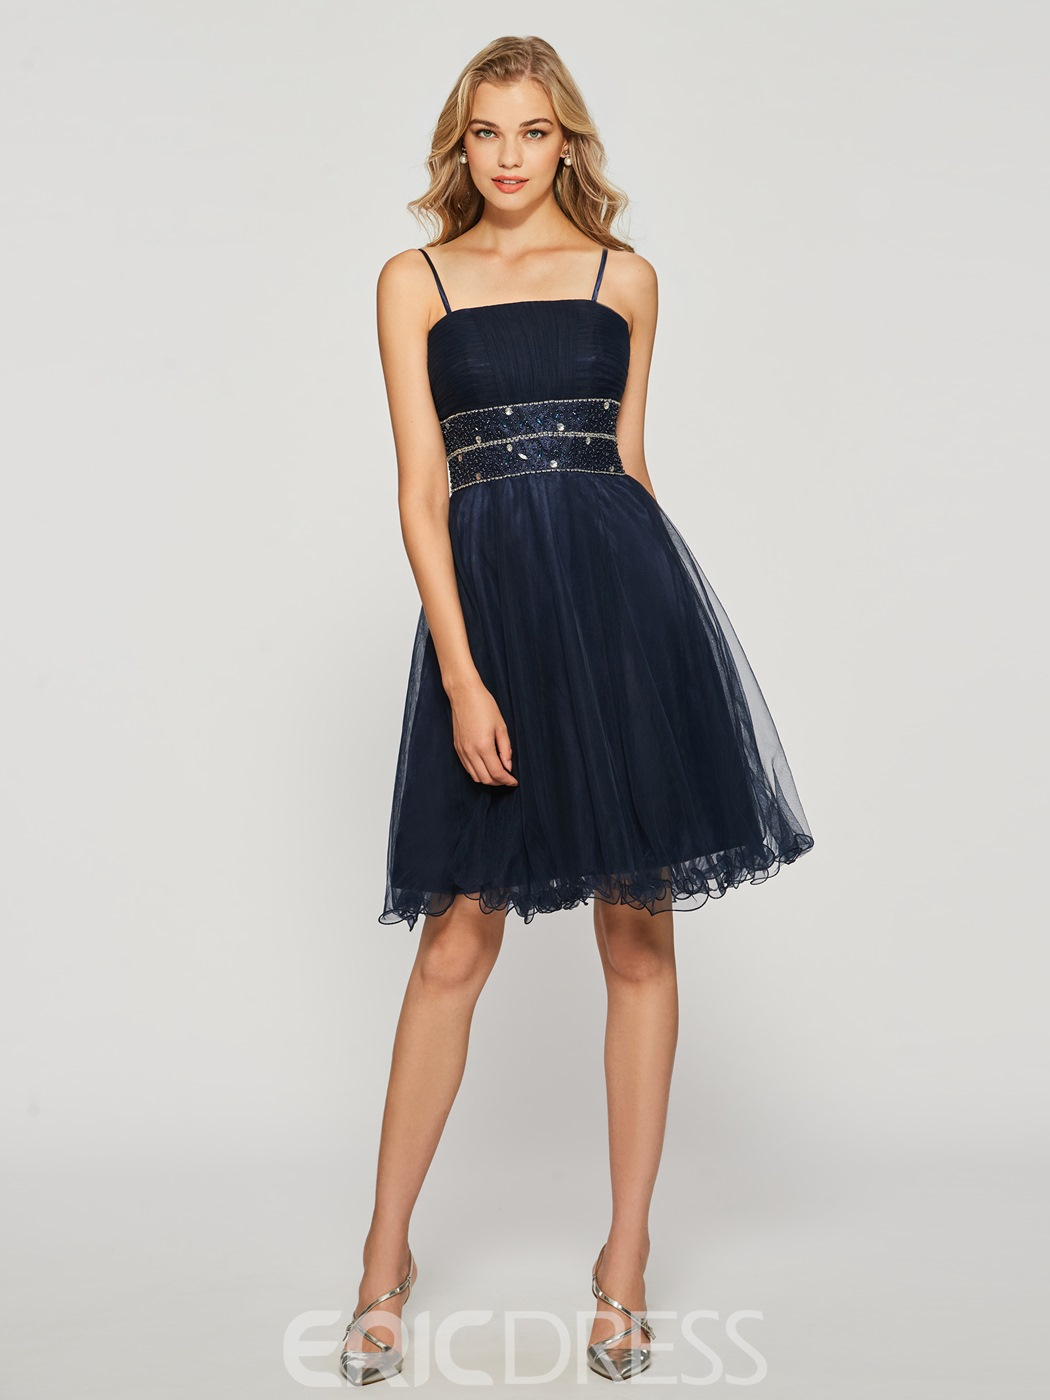 Ericdress Spaghetti Straps Beading Knee-Length Cocktail Dress